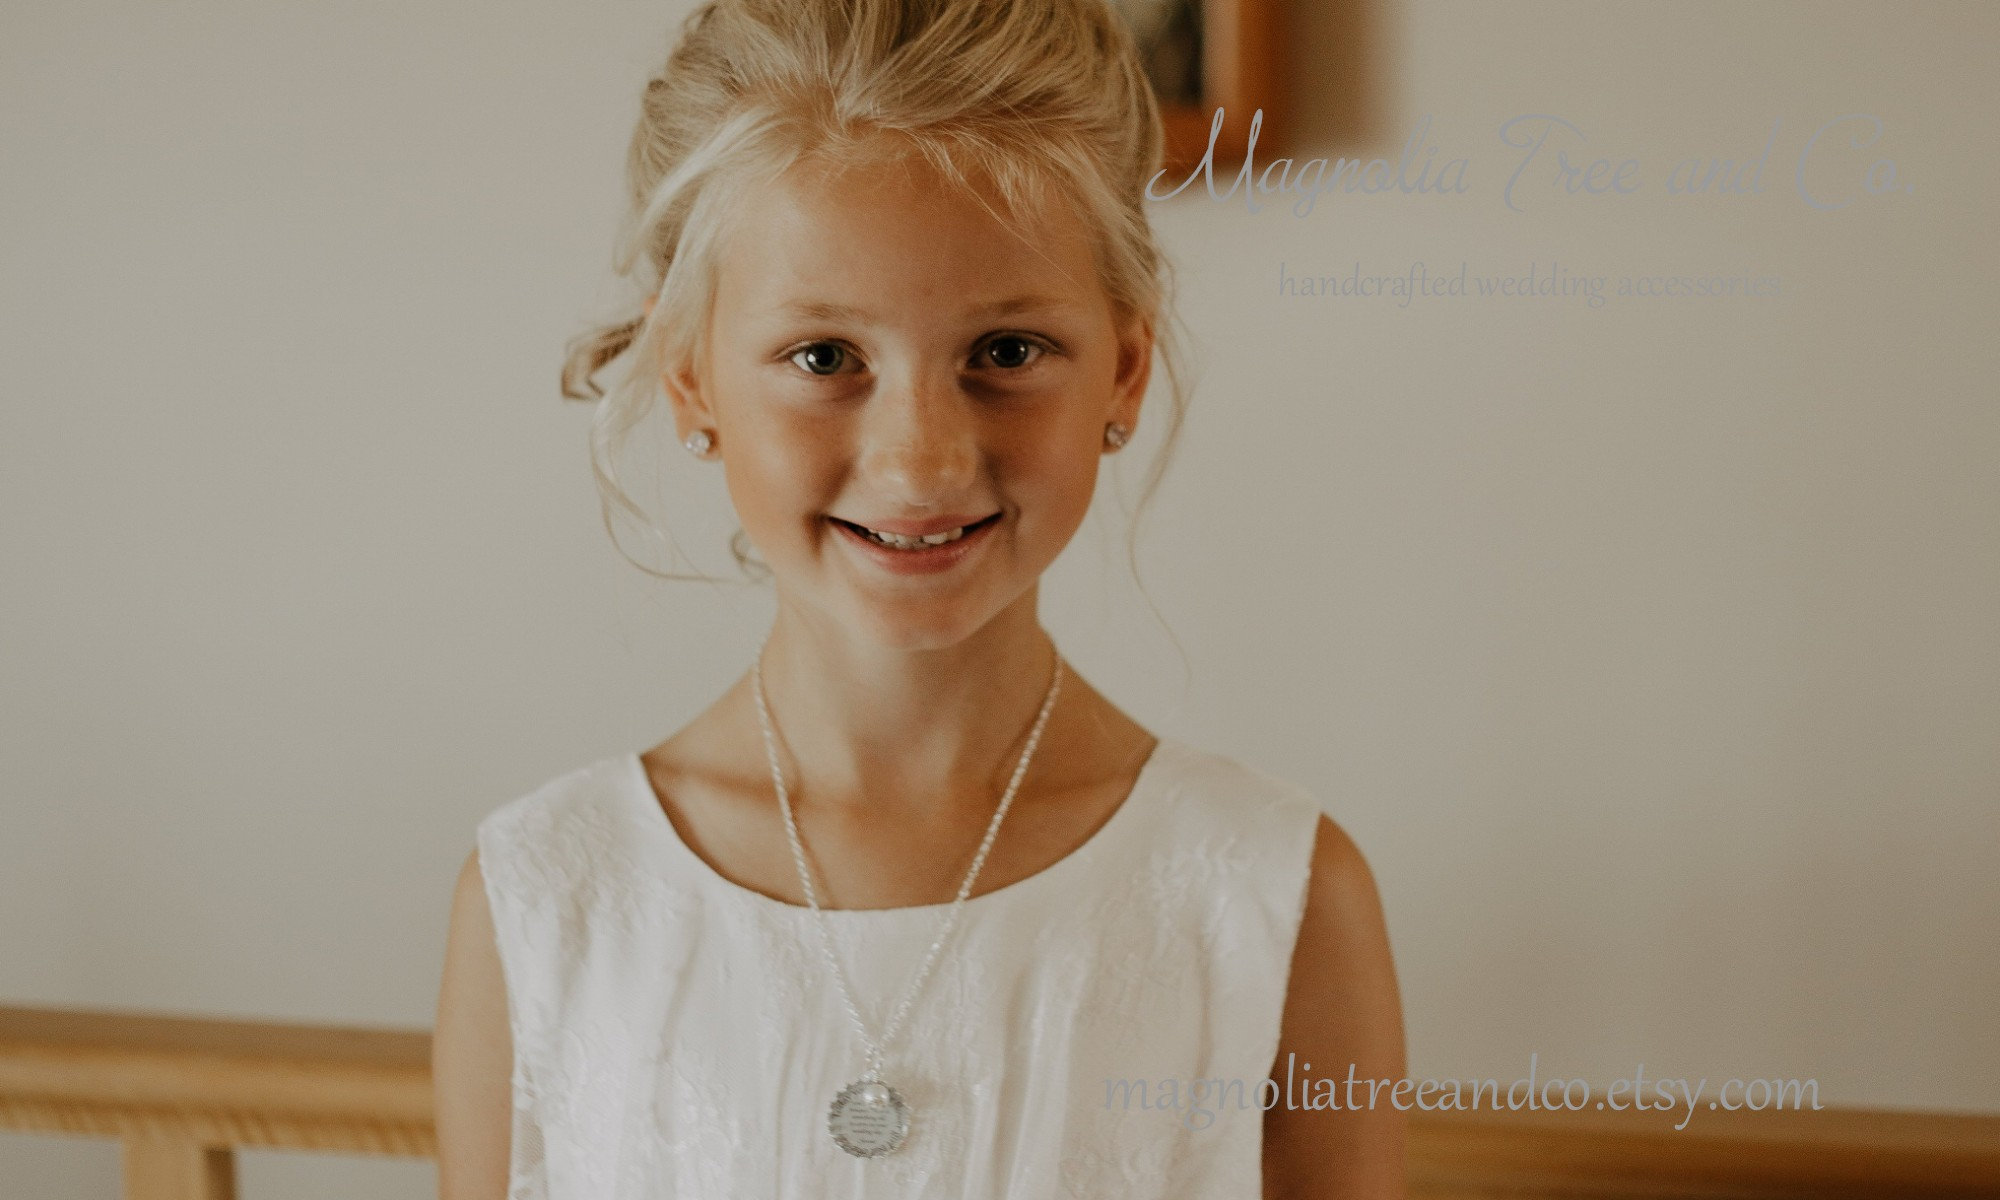 Flower Girl Necklace Bridesmaid Necklace Personalized Bridal image 5